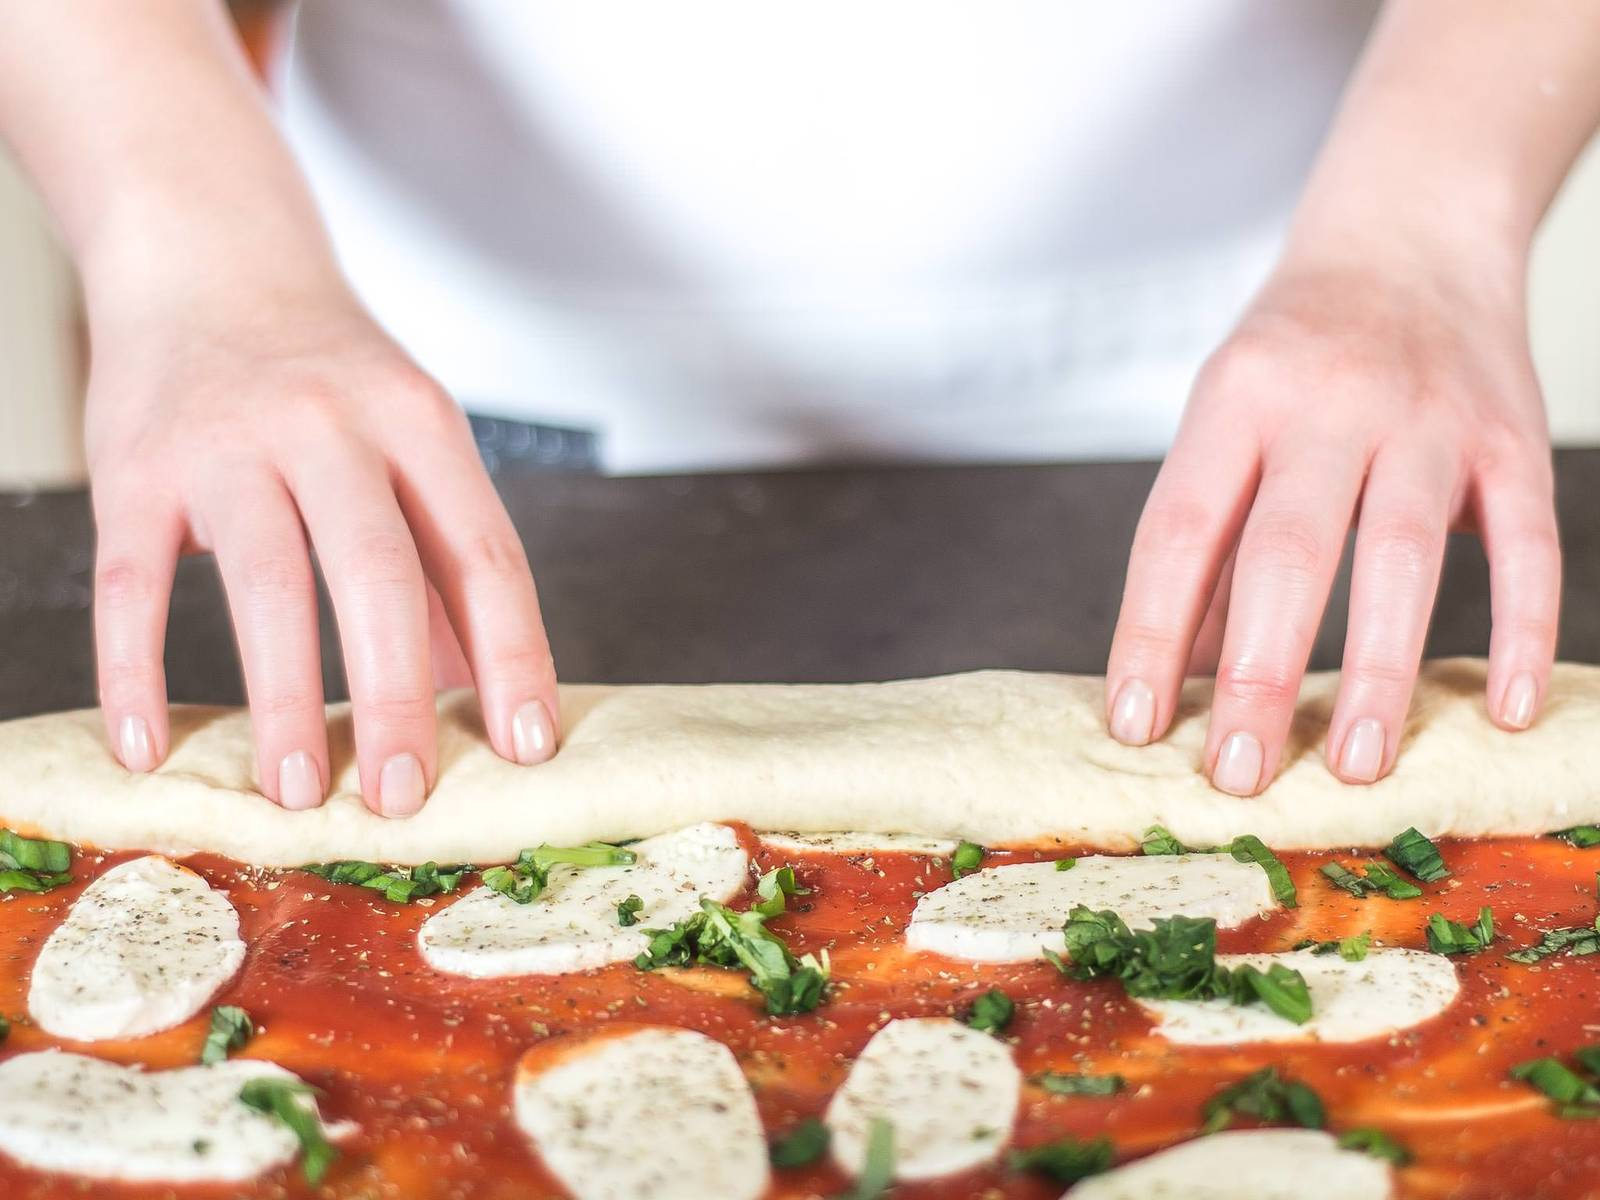 Starting from the long side, roll up the dough from the bottom edge.